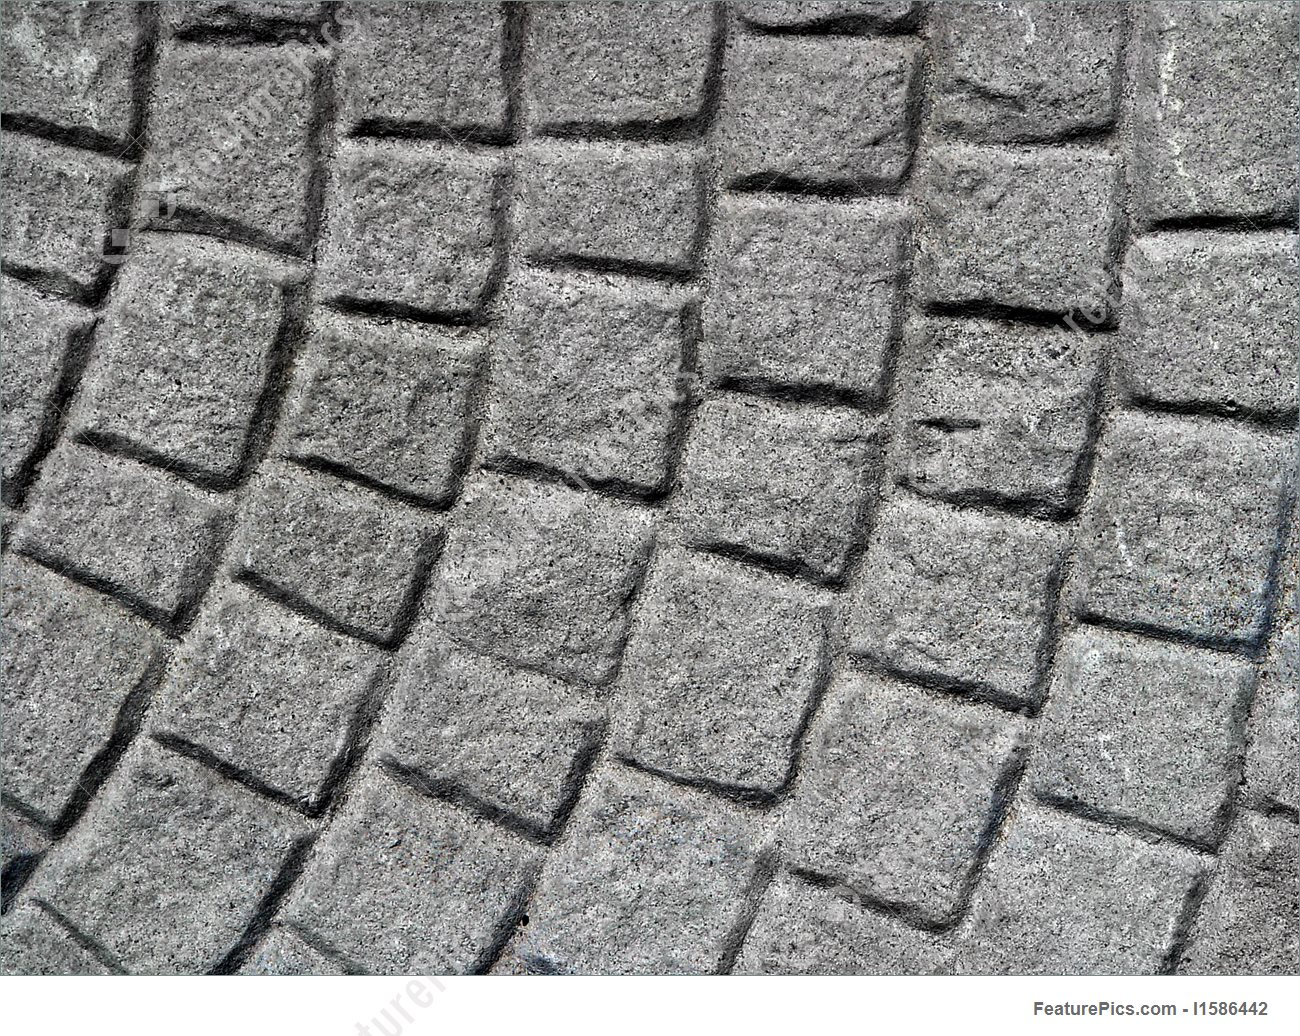 close view of an abstract image made with paving stones. SYHOXDQ